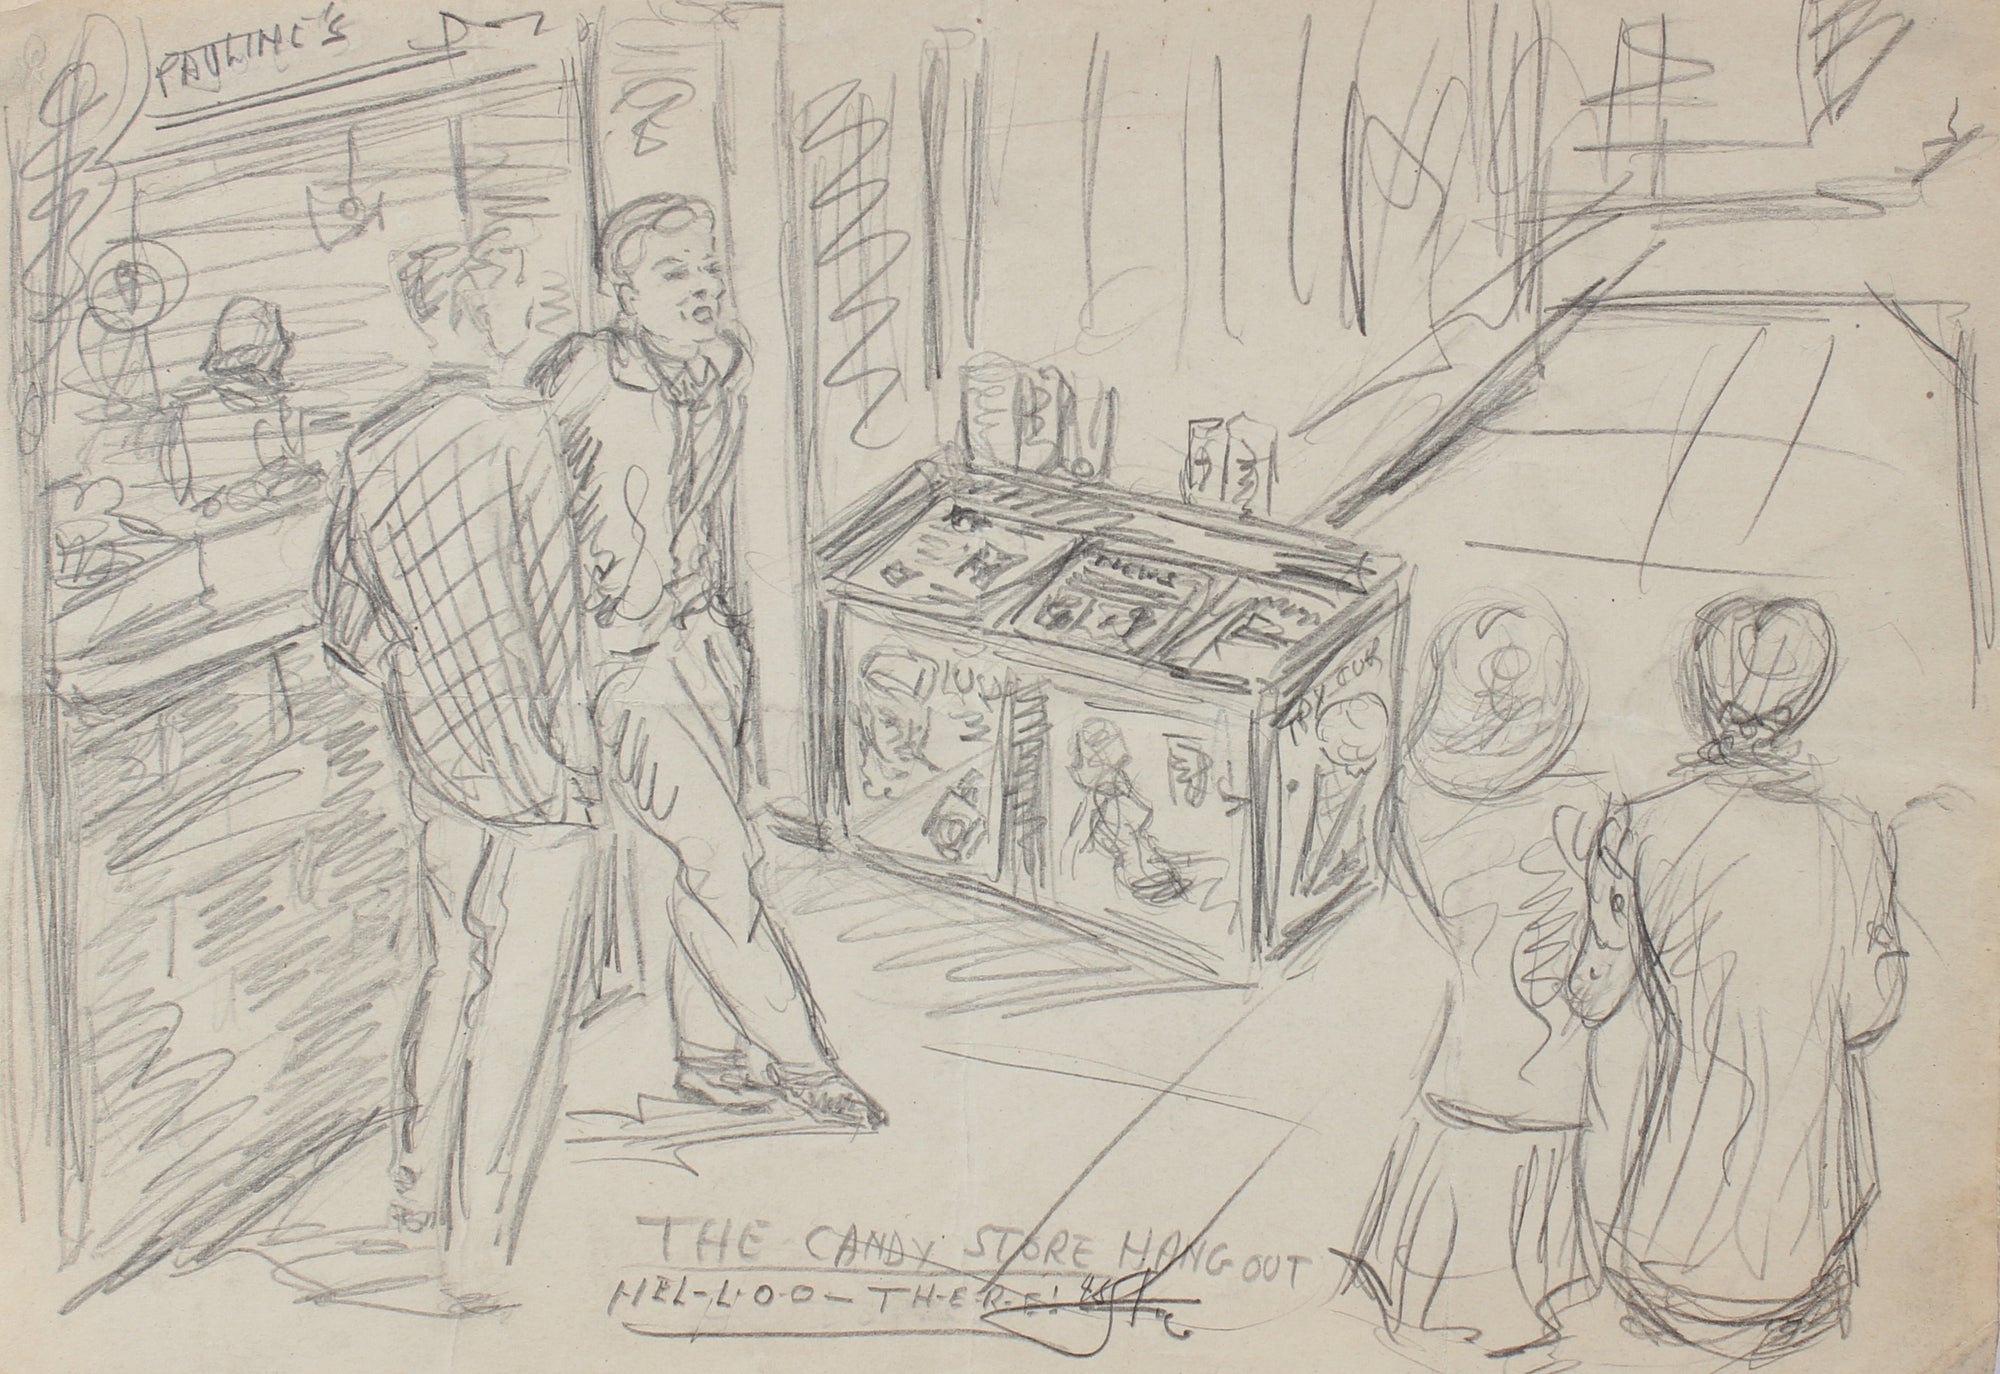 <i>The Candy Store Hang Out</i> <br>1948 Graphite <br><br>#95062